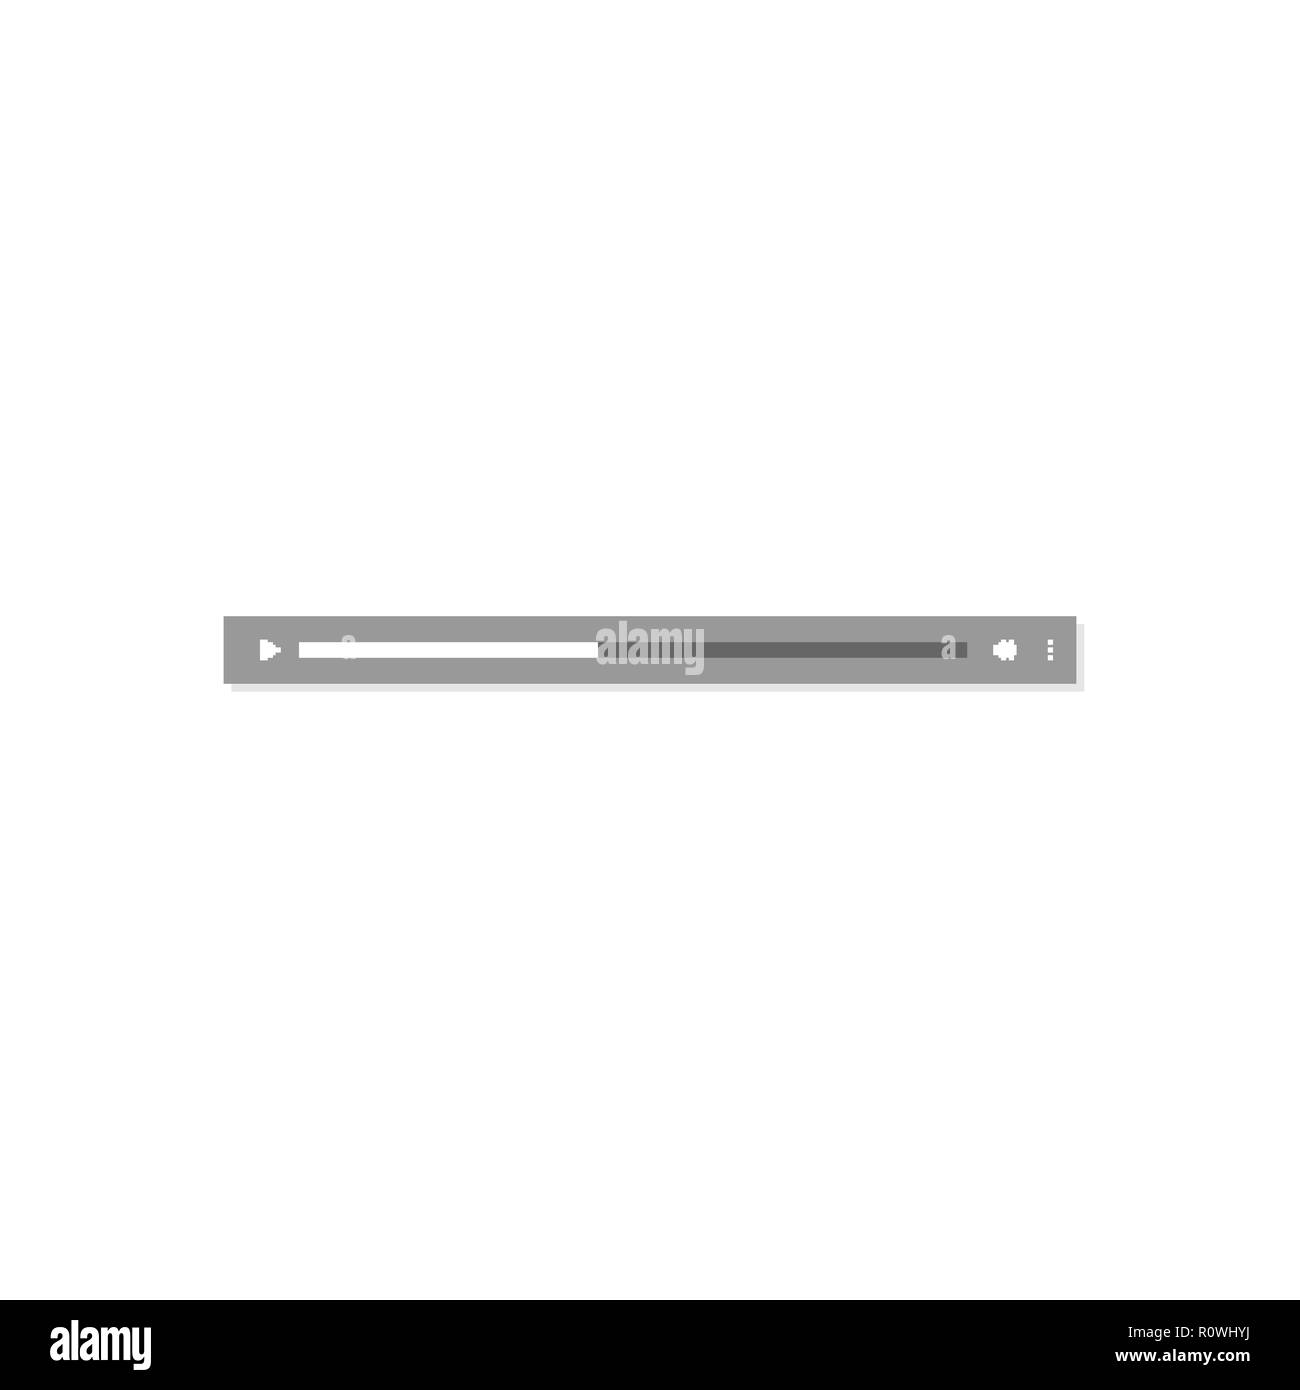 Simple audio message playback bar isolated on white background - Stock Image